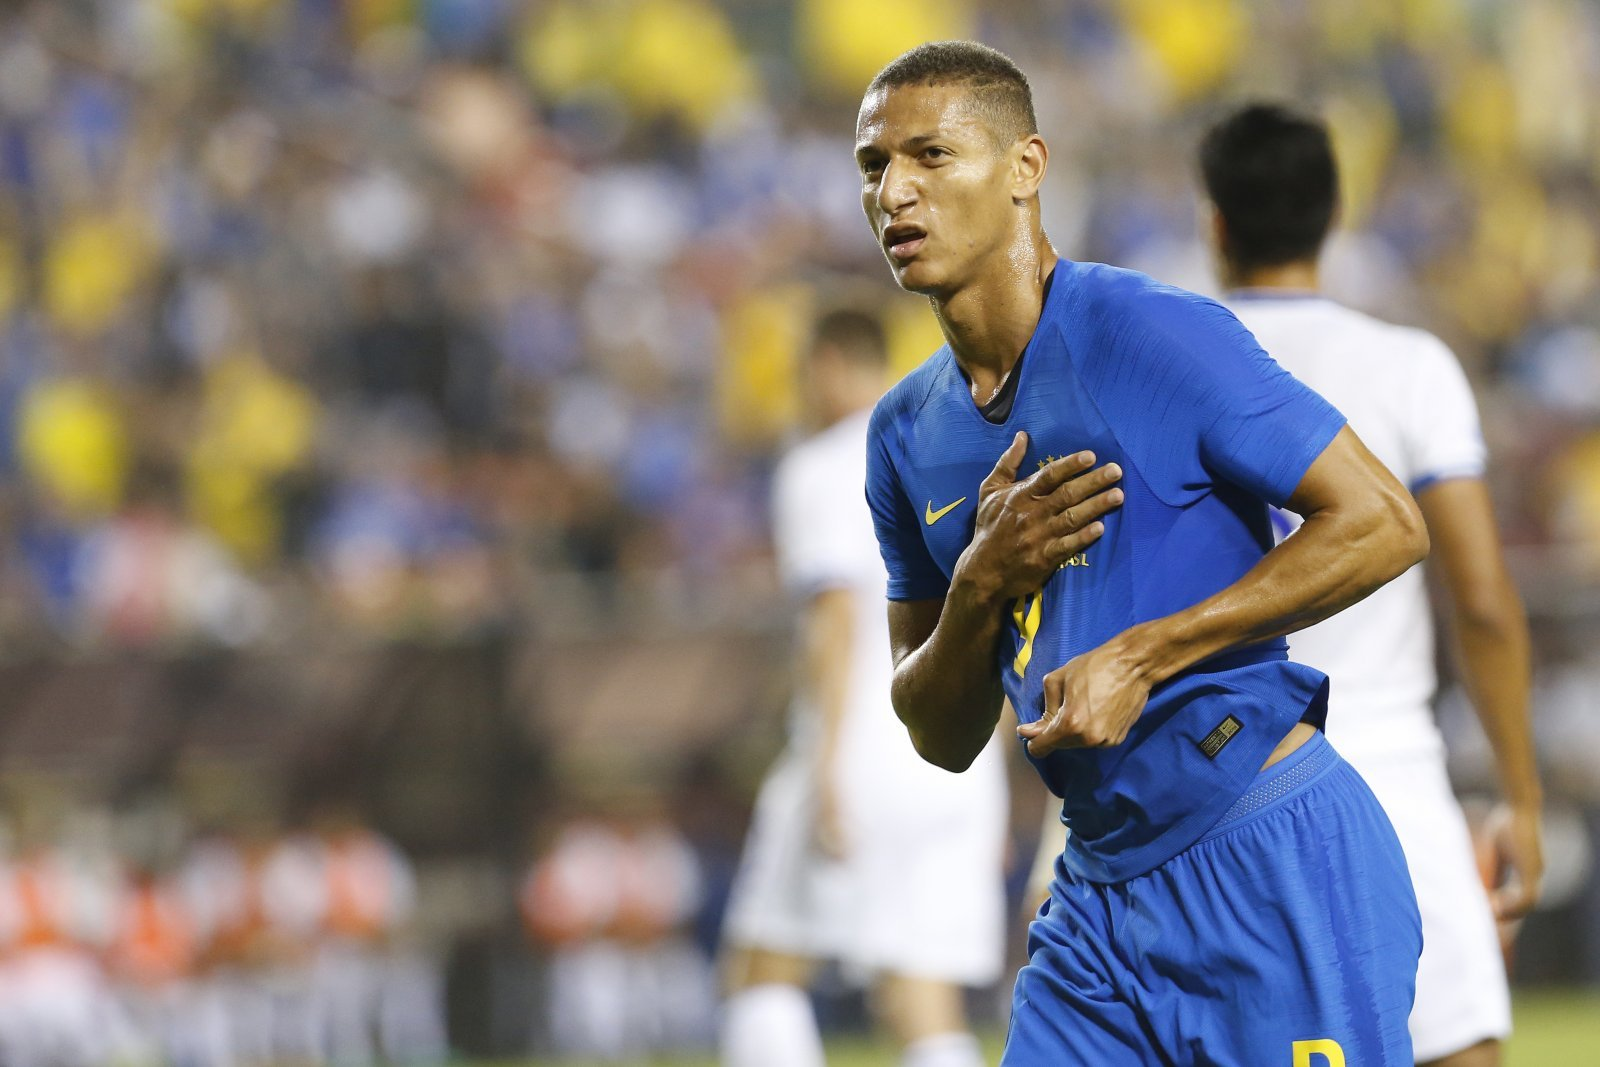 Fans laud Richarlison following his brace on international duty